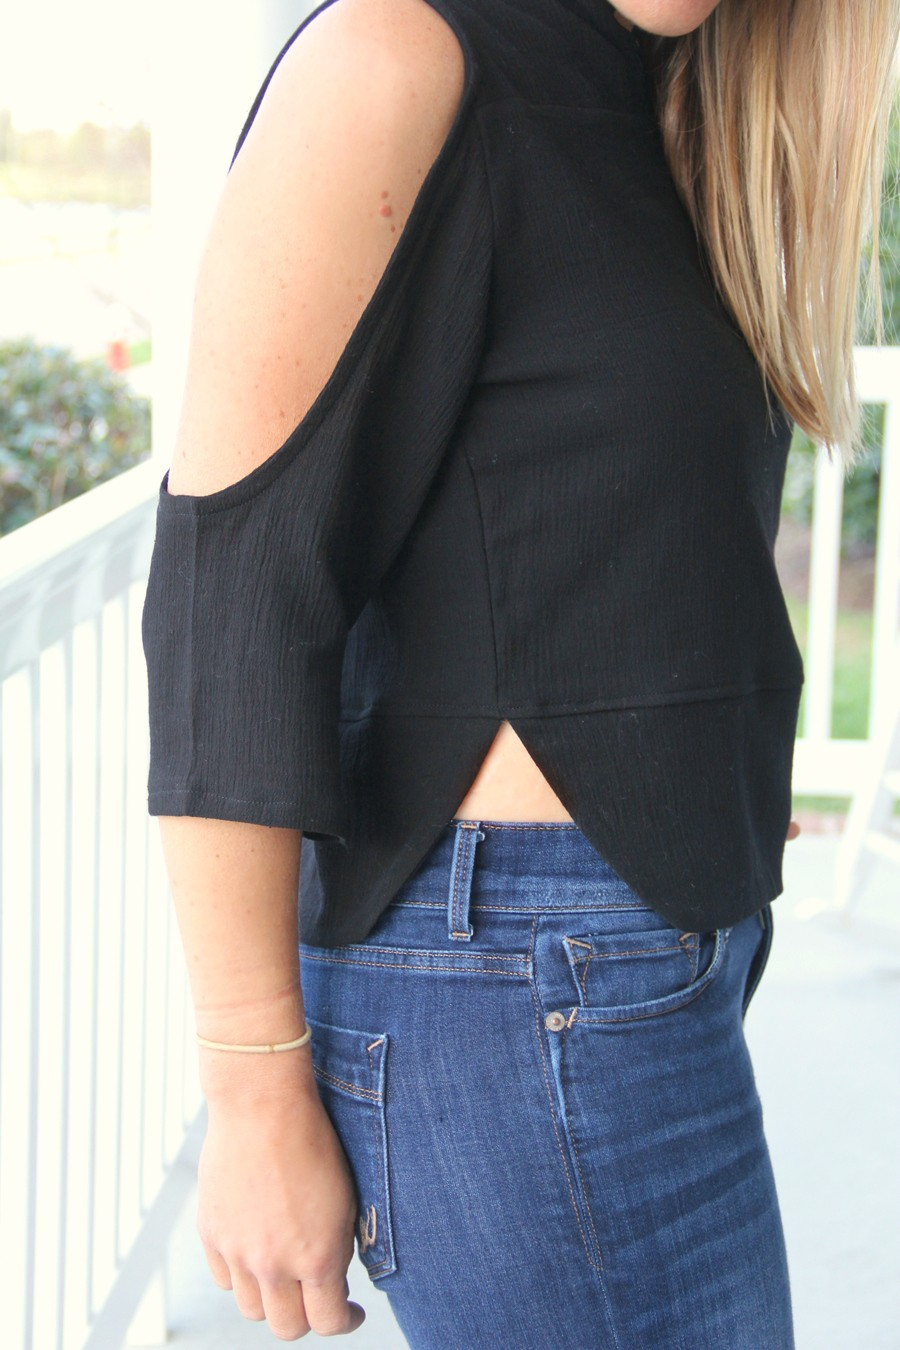 Open Shoulder Blouse DIY, with front yoke slit neckline and rounded band bottom